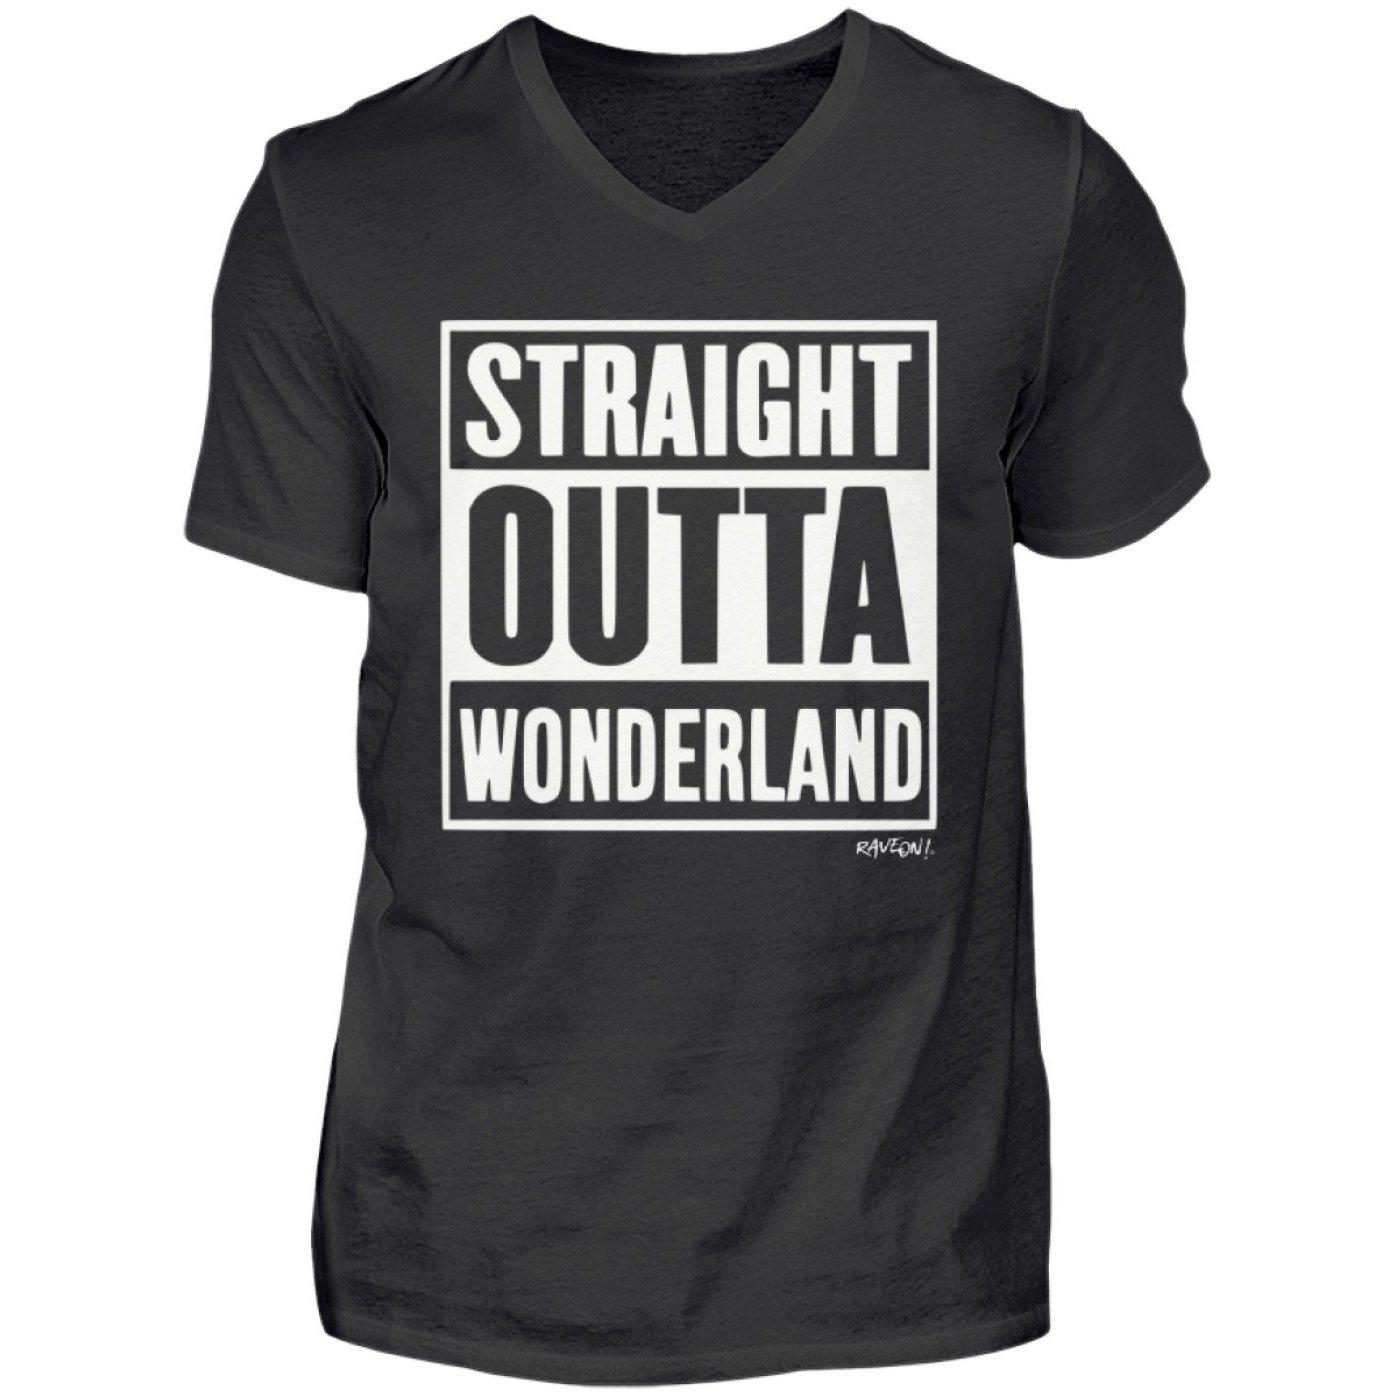 STRAIGHT OUTTA WONDERLAND - Rave On!® - Herren V-Neck Shirt-V-Neck Herrenshirt-Black-S-Rave-On! I www.rave-on.shop I Deine Rave & Techno Szene Shop I compton, Design - STRAIGHT OUTTA WONDERLAND - Rave On!®, rave, straight, techno, wonderland - Sexy Festival Streetwear , Clubwear & Raver Style